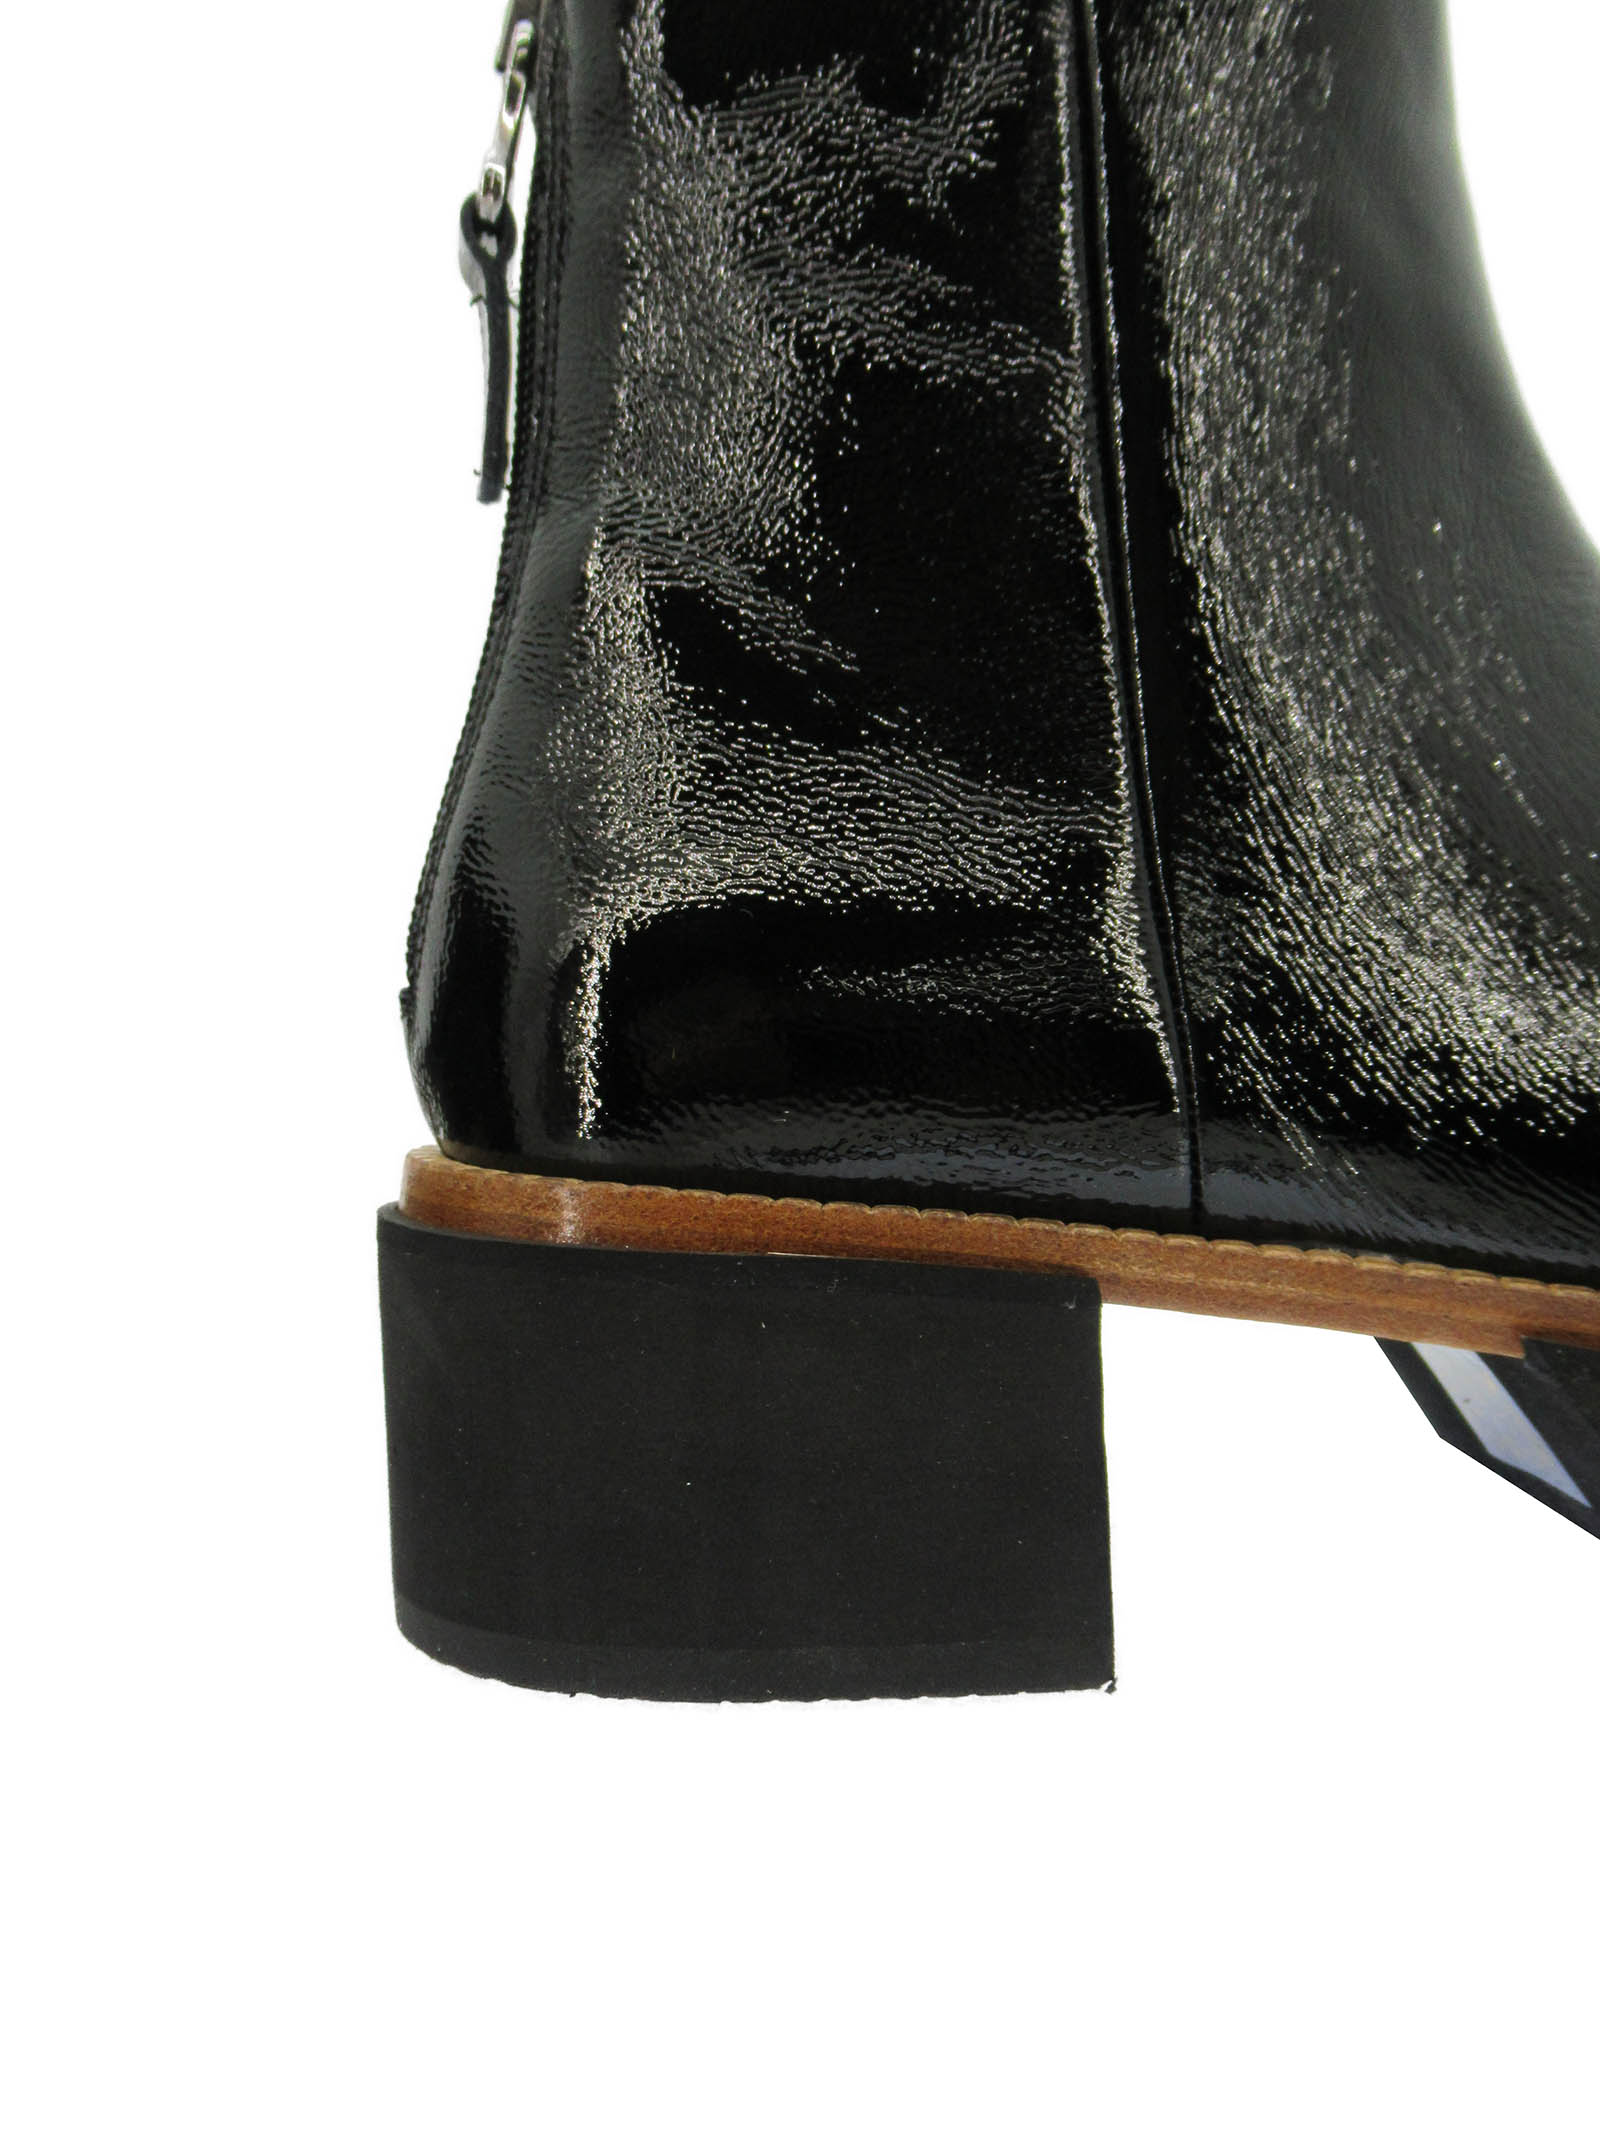 Women's Shoes Ankle Boots in Black Naplak Leather with Back Zip and Micro Ultra Light Sole Tattoo | Ankle Boots | PAM12Q001